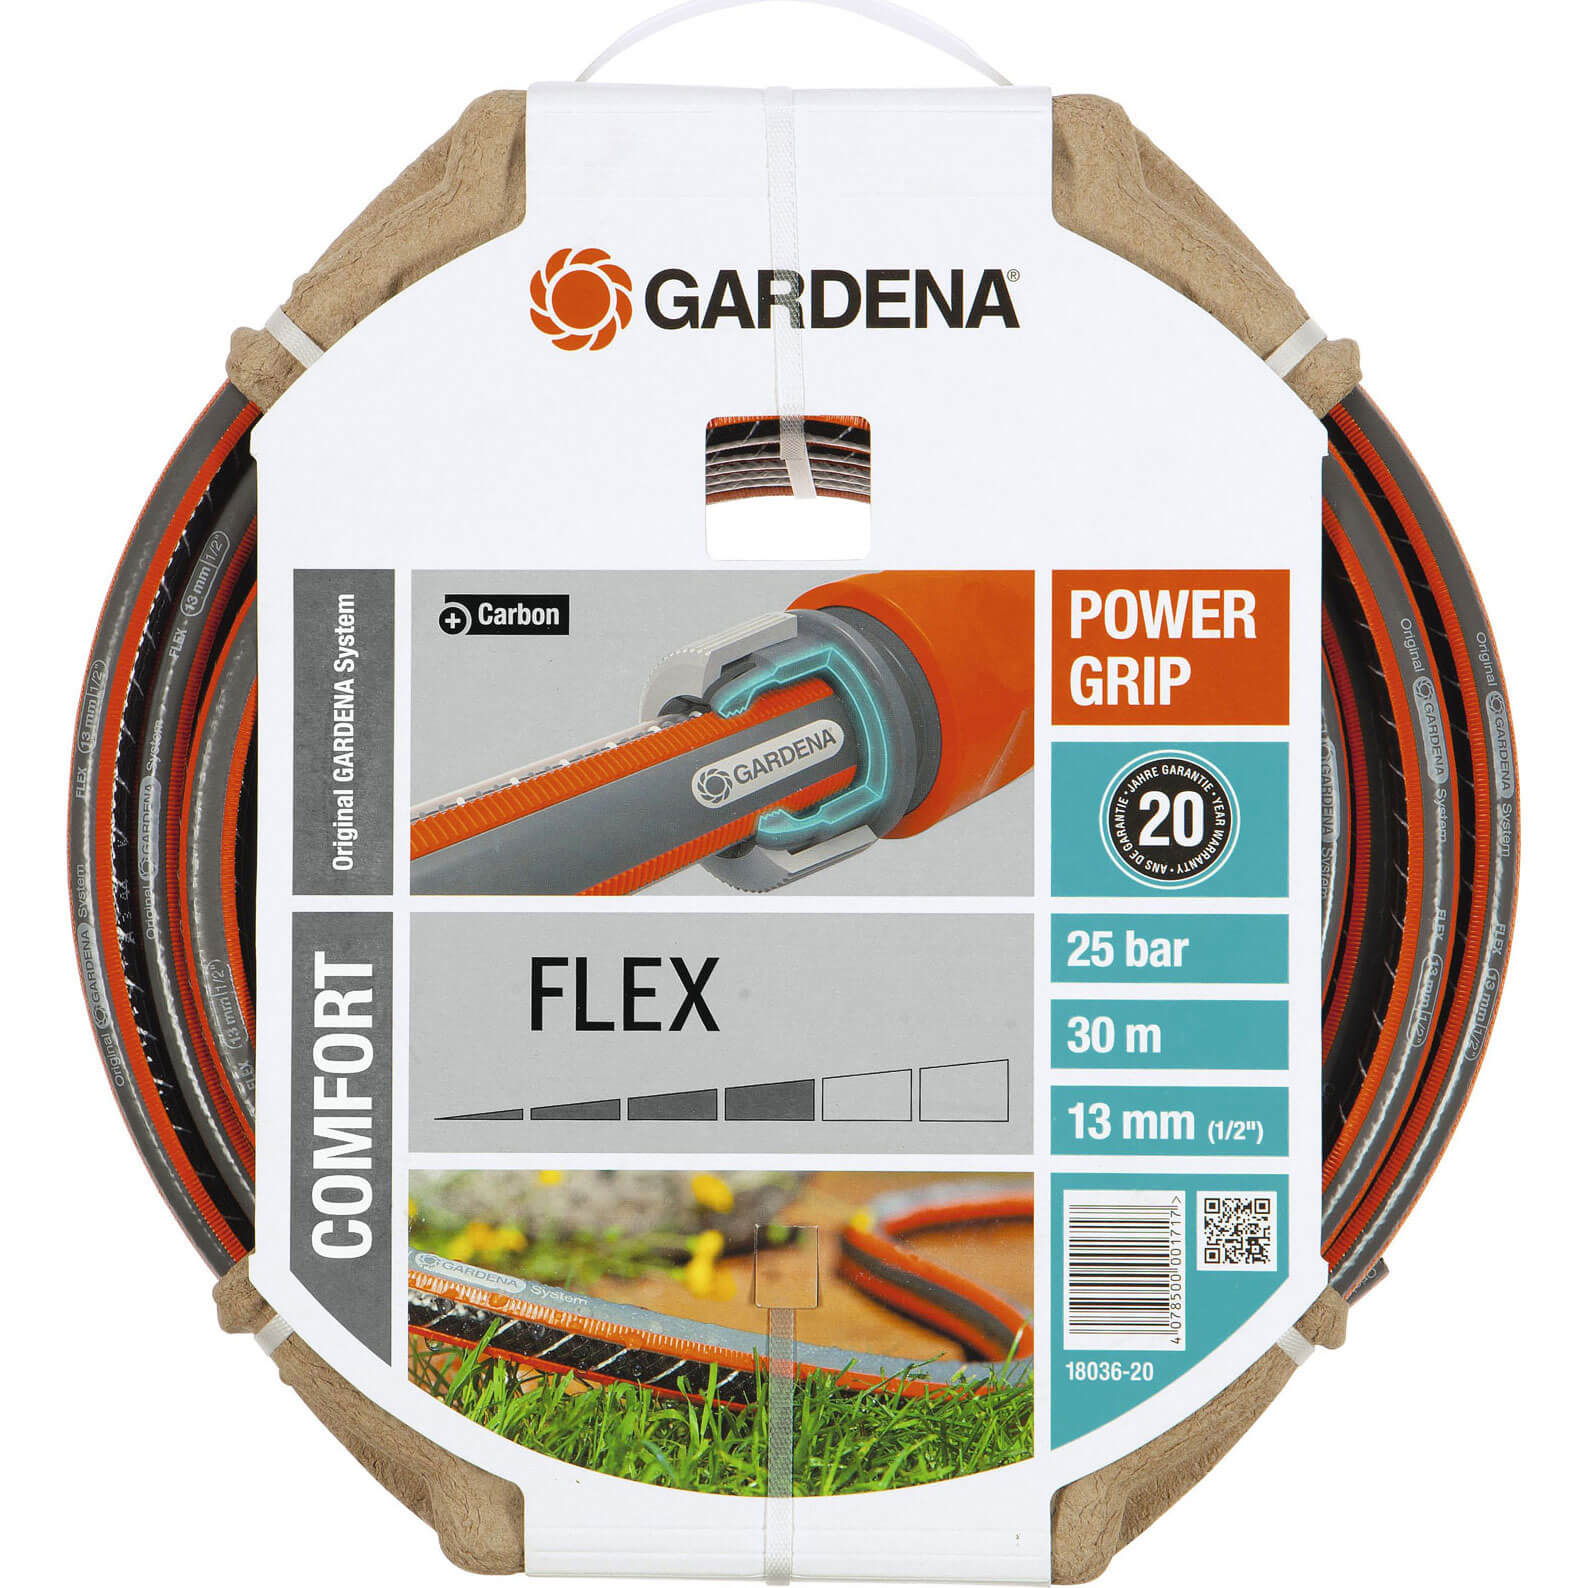 gardena comfort flex hose pipe. Black Bedroom Furniture Sets. Home Design Ideas